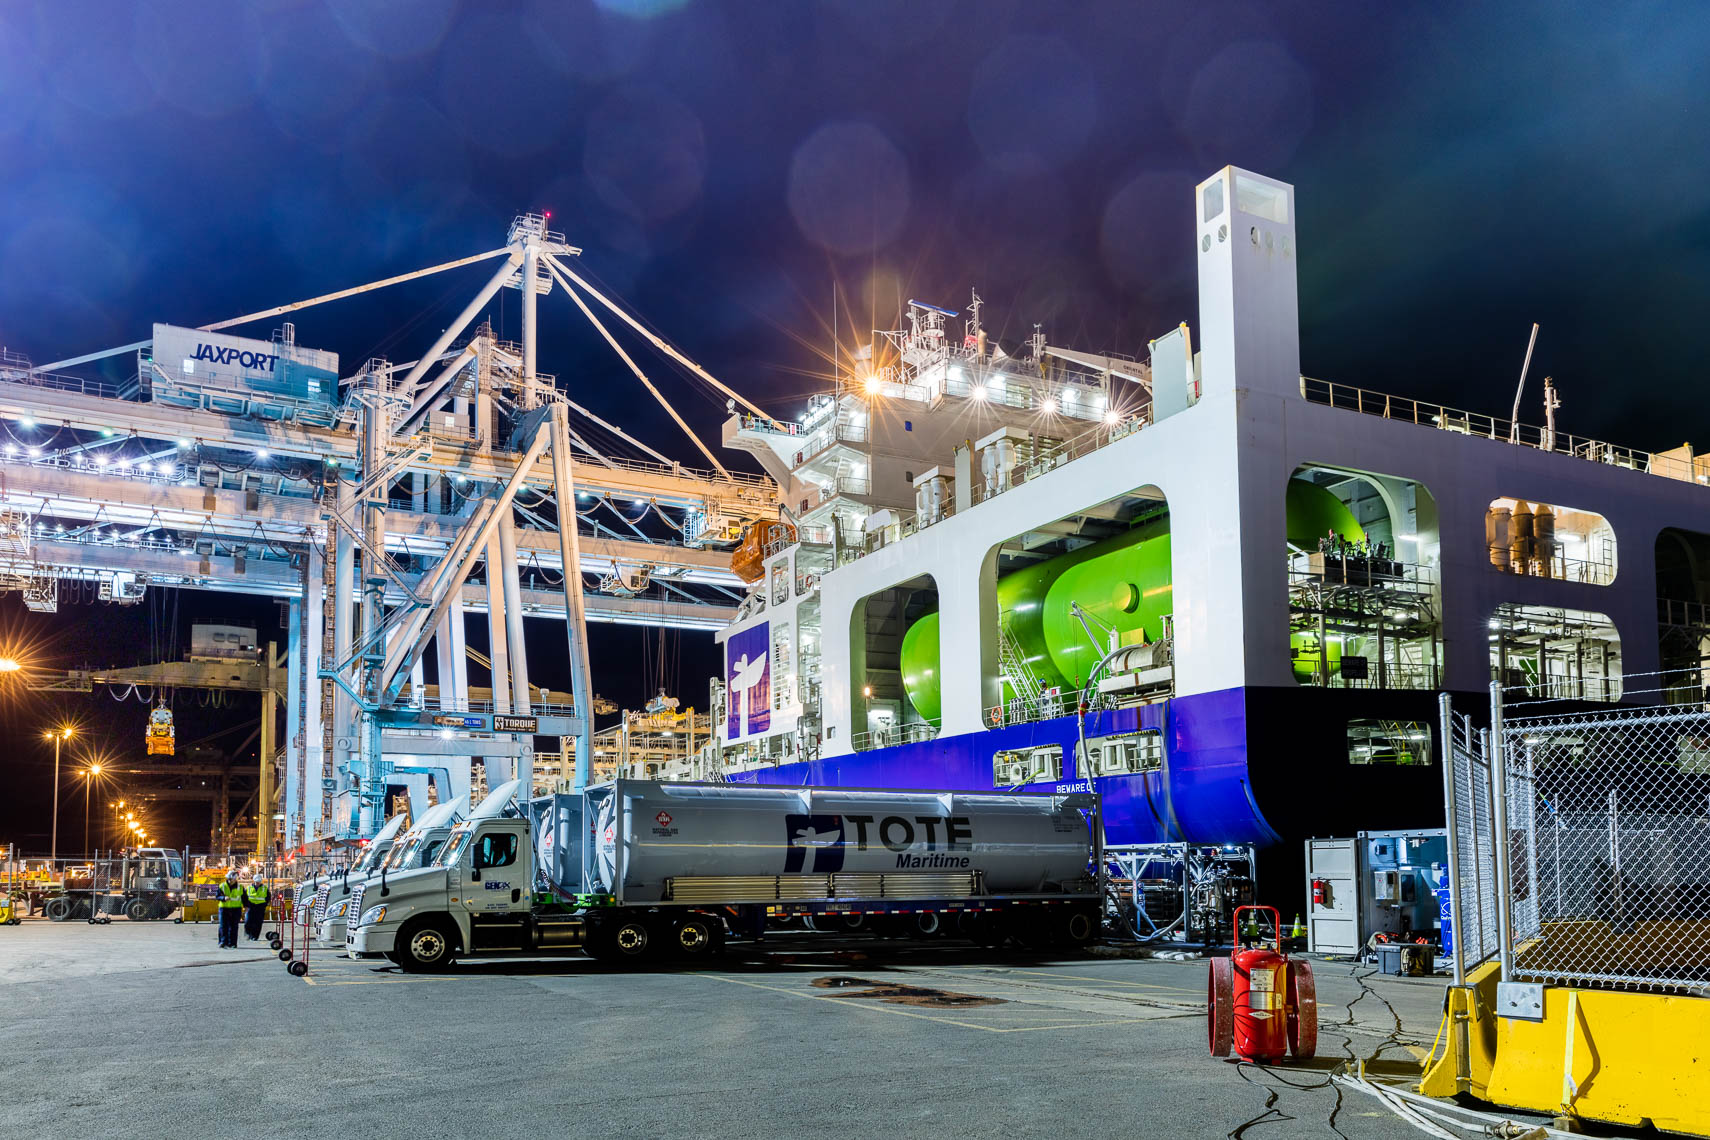 LNG trucks refill the LNG tanks on Tote Maritime